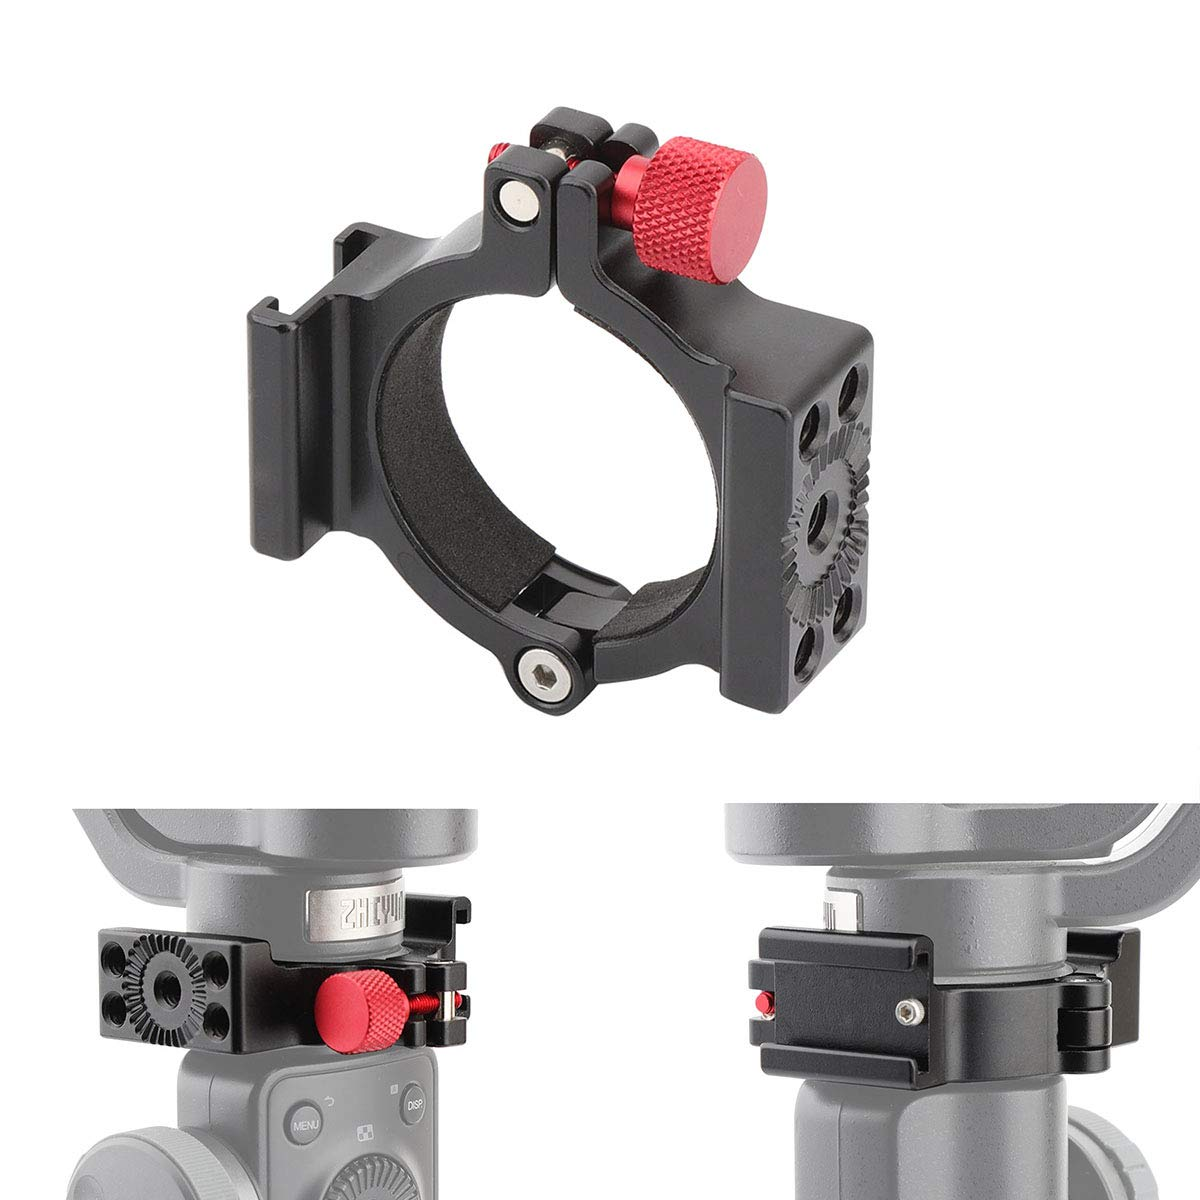 AFVO Ring Clamp with Cold Shoe for Zhiyun Smooth 4 Applied to Rode Microphone LED Light, Anti-Scratch (New Version) by AFVO